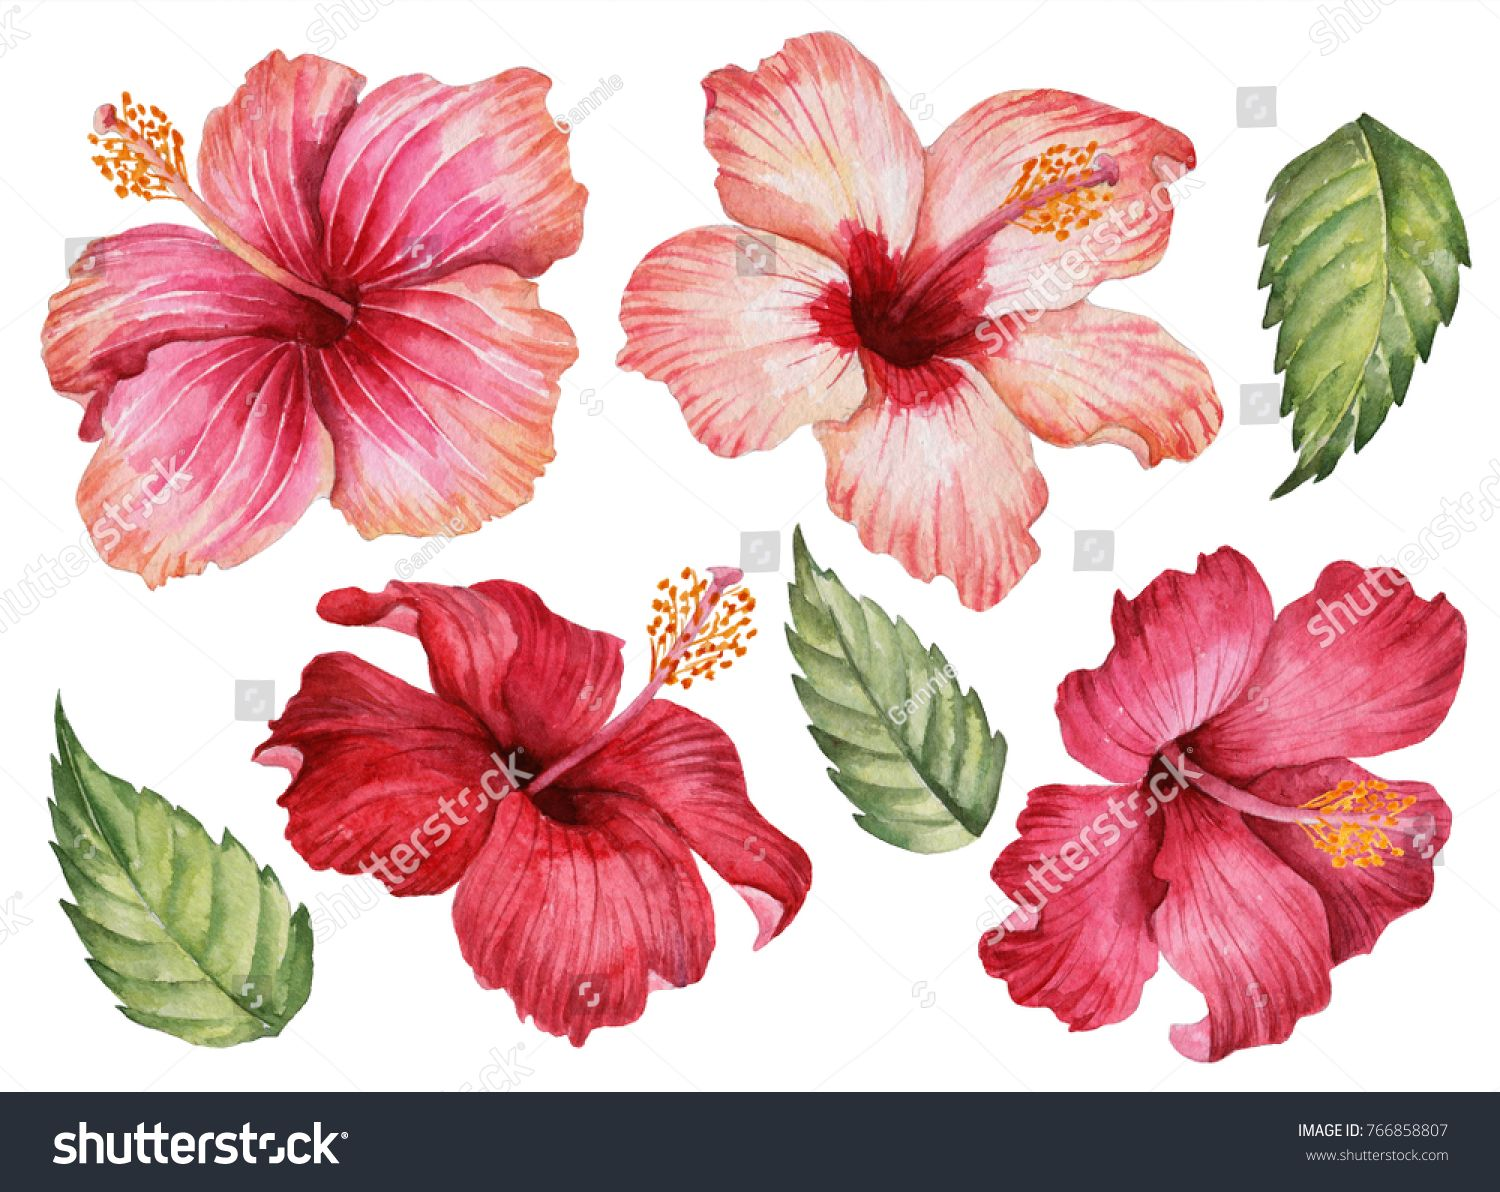 Watercolor Set Of Pink And Red Flowers Illustration Of Hibiscus And Leaves Hand Drawn Floral E Flower Illustration Watercolor Flowers Tutorial Flower Drawing